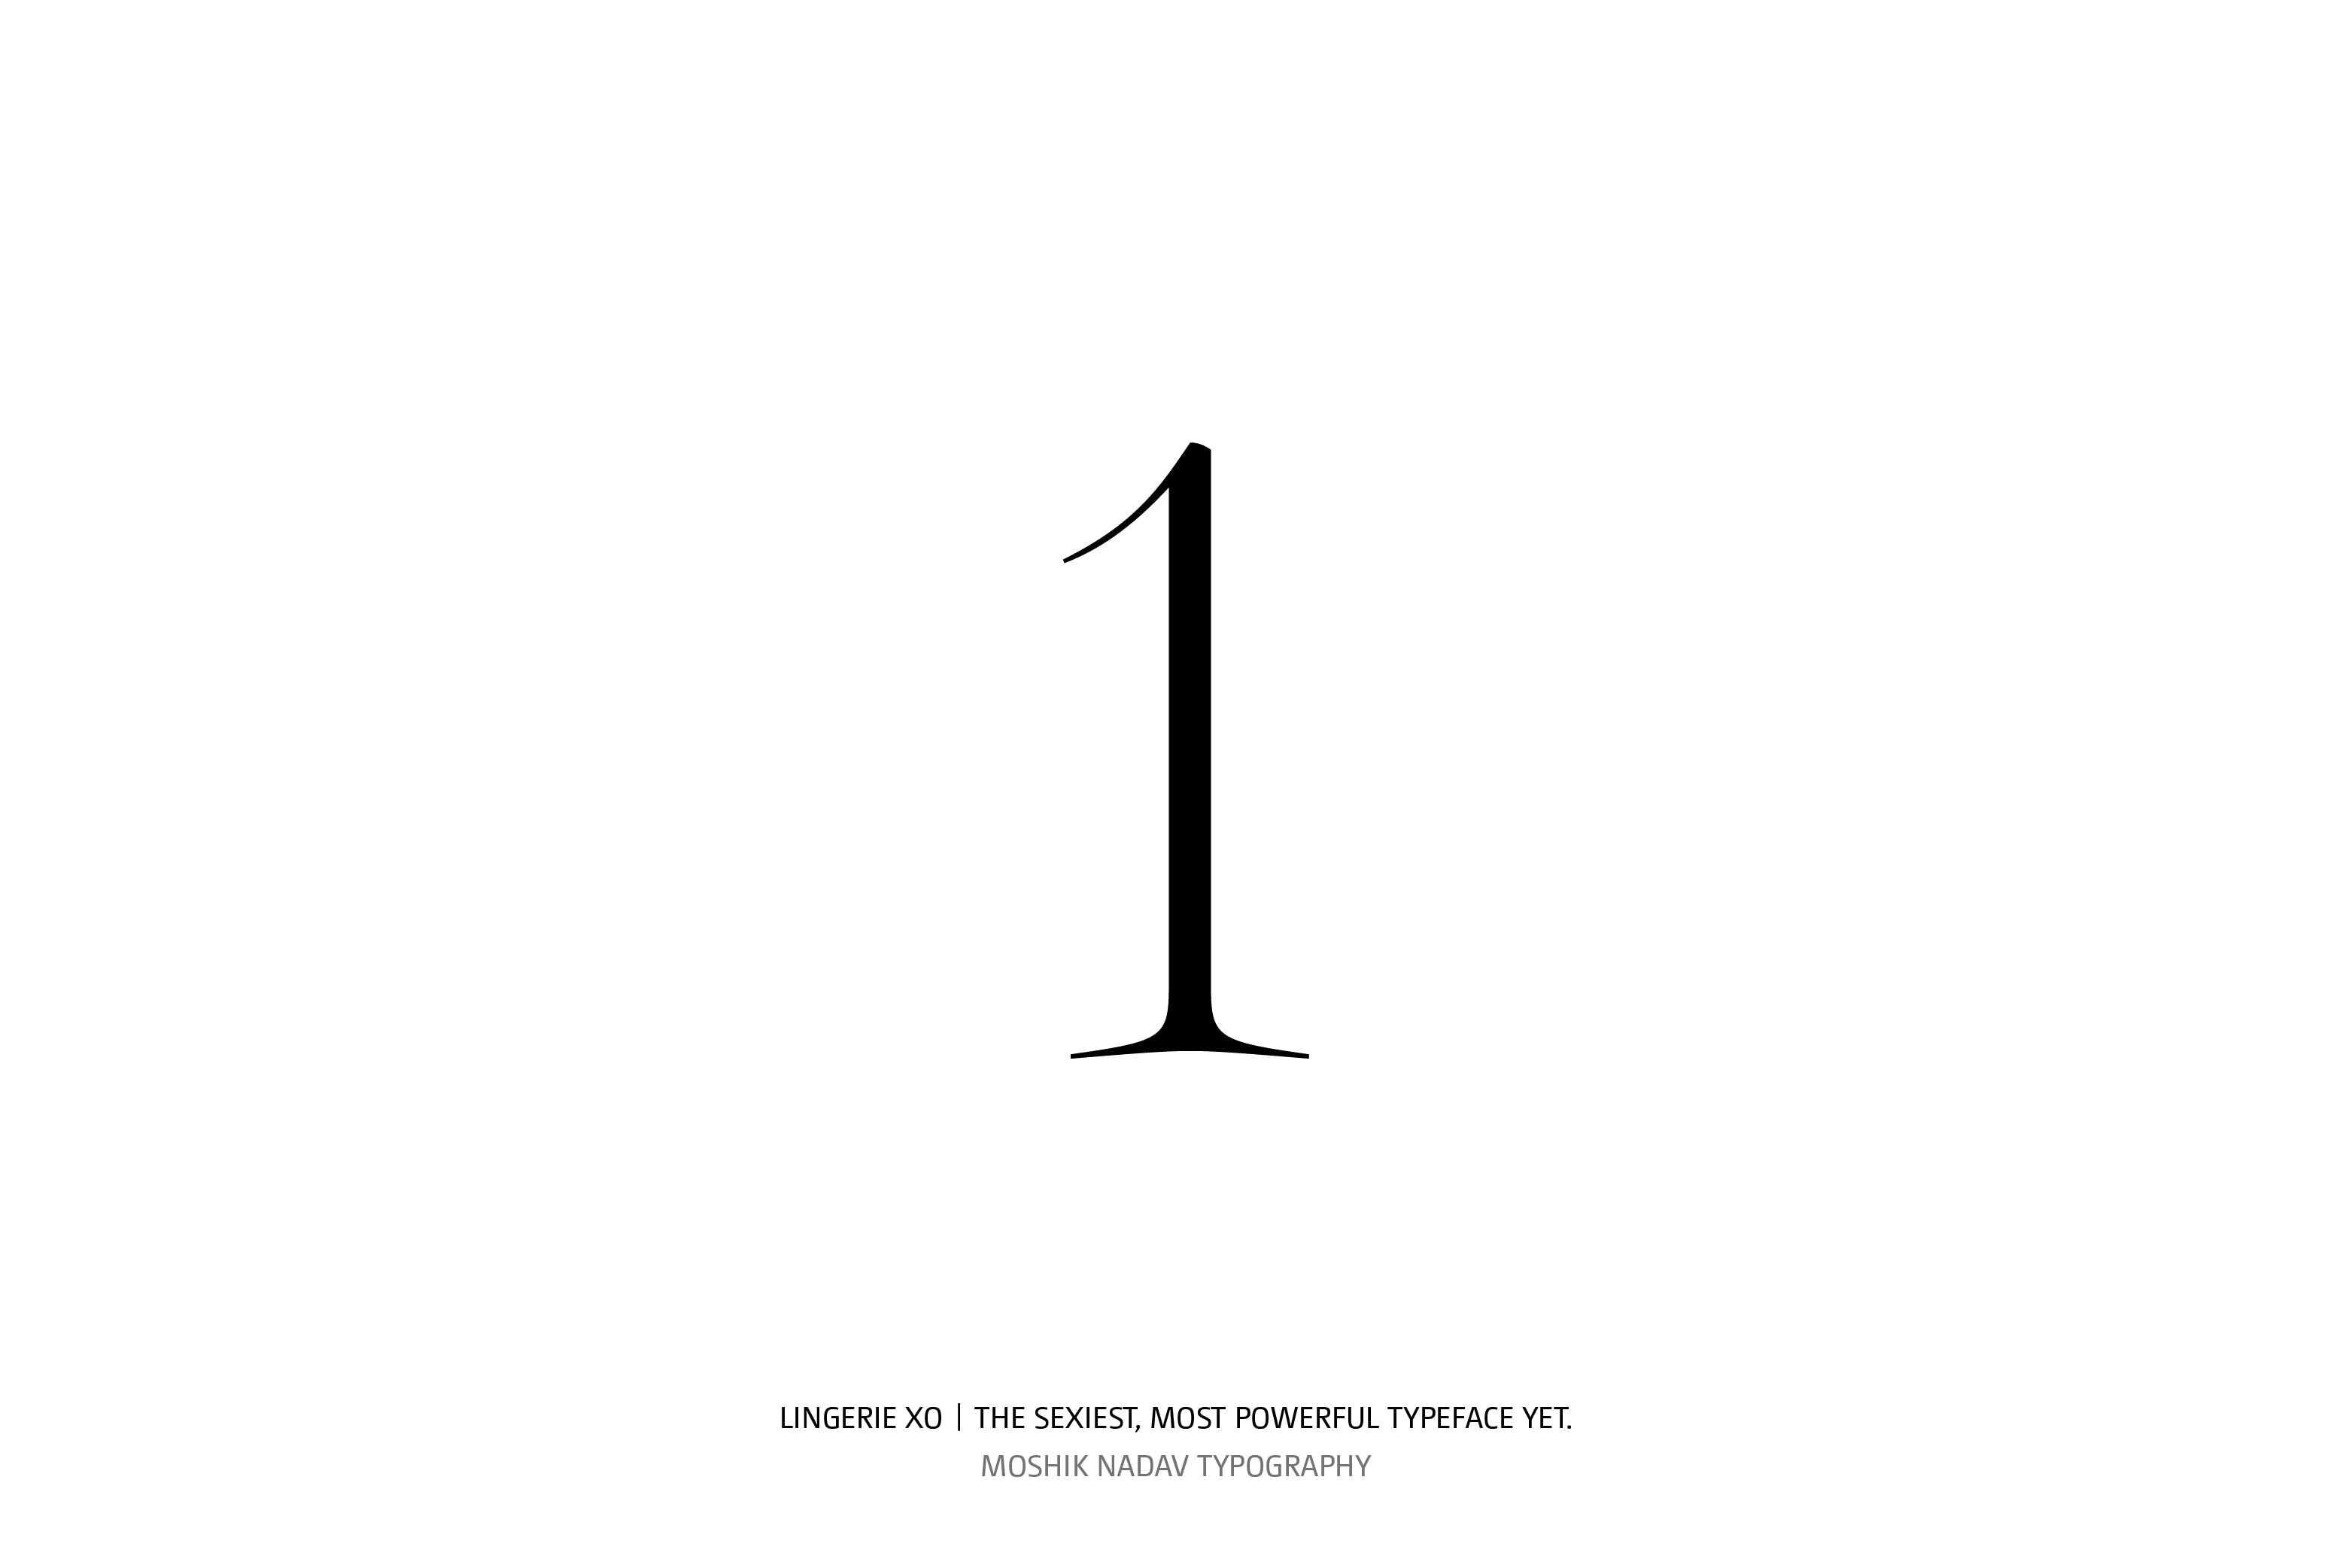 Lingerie XO Super Sexy Typeface - Moshik Nadav Typography number one